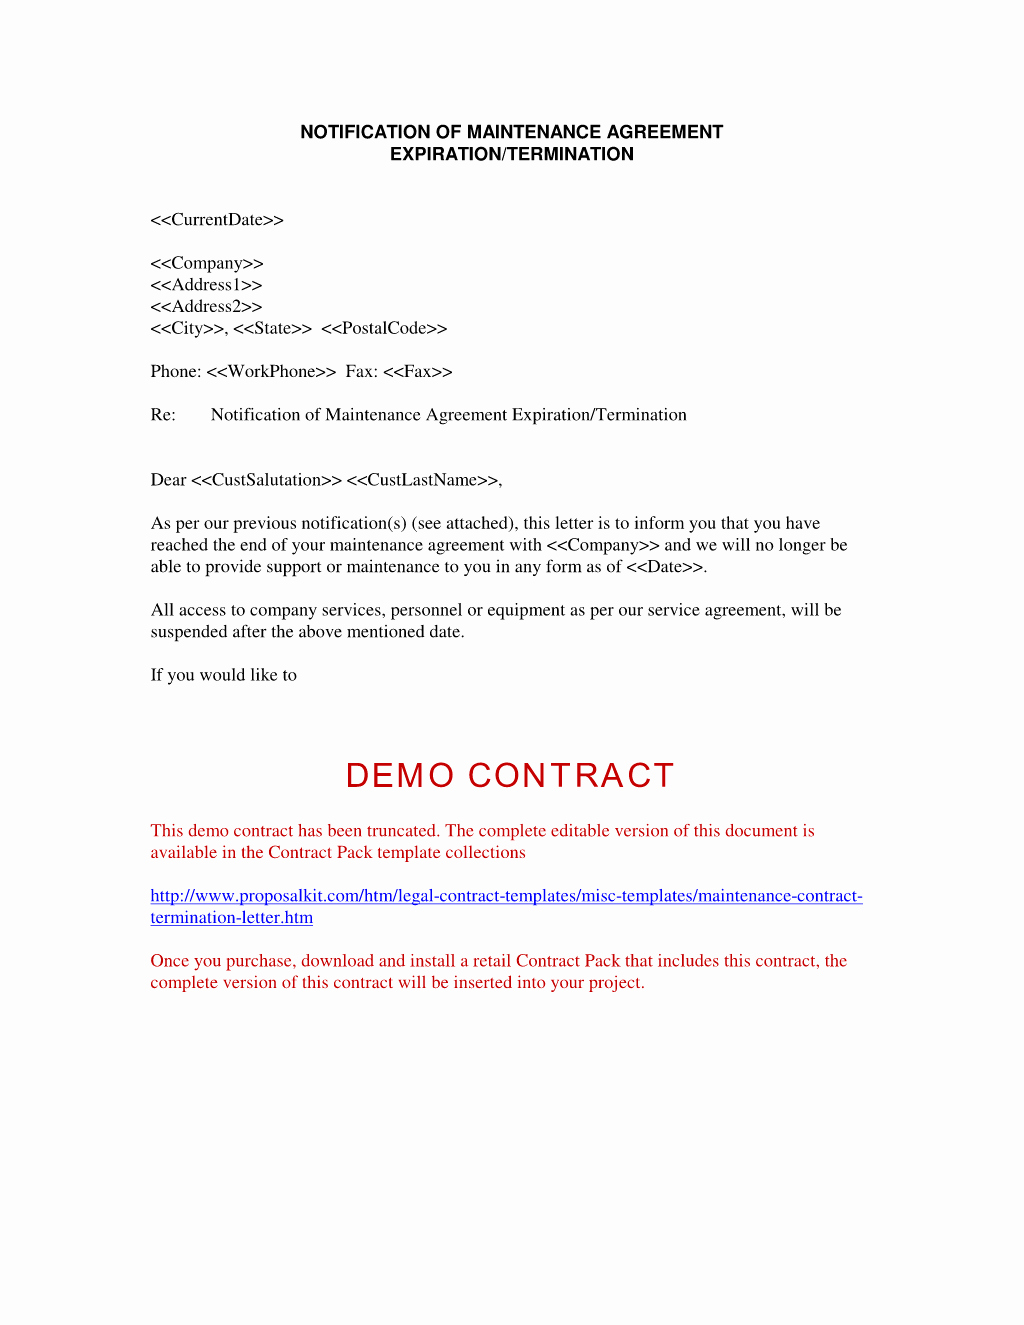 Service Contract Termination Letter Template Best Of Contract Termination Letter Free Printable Documents